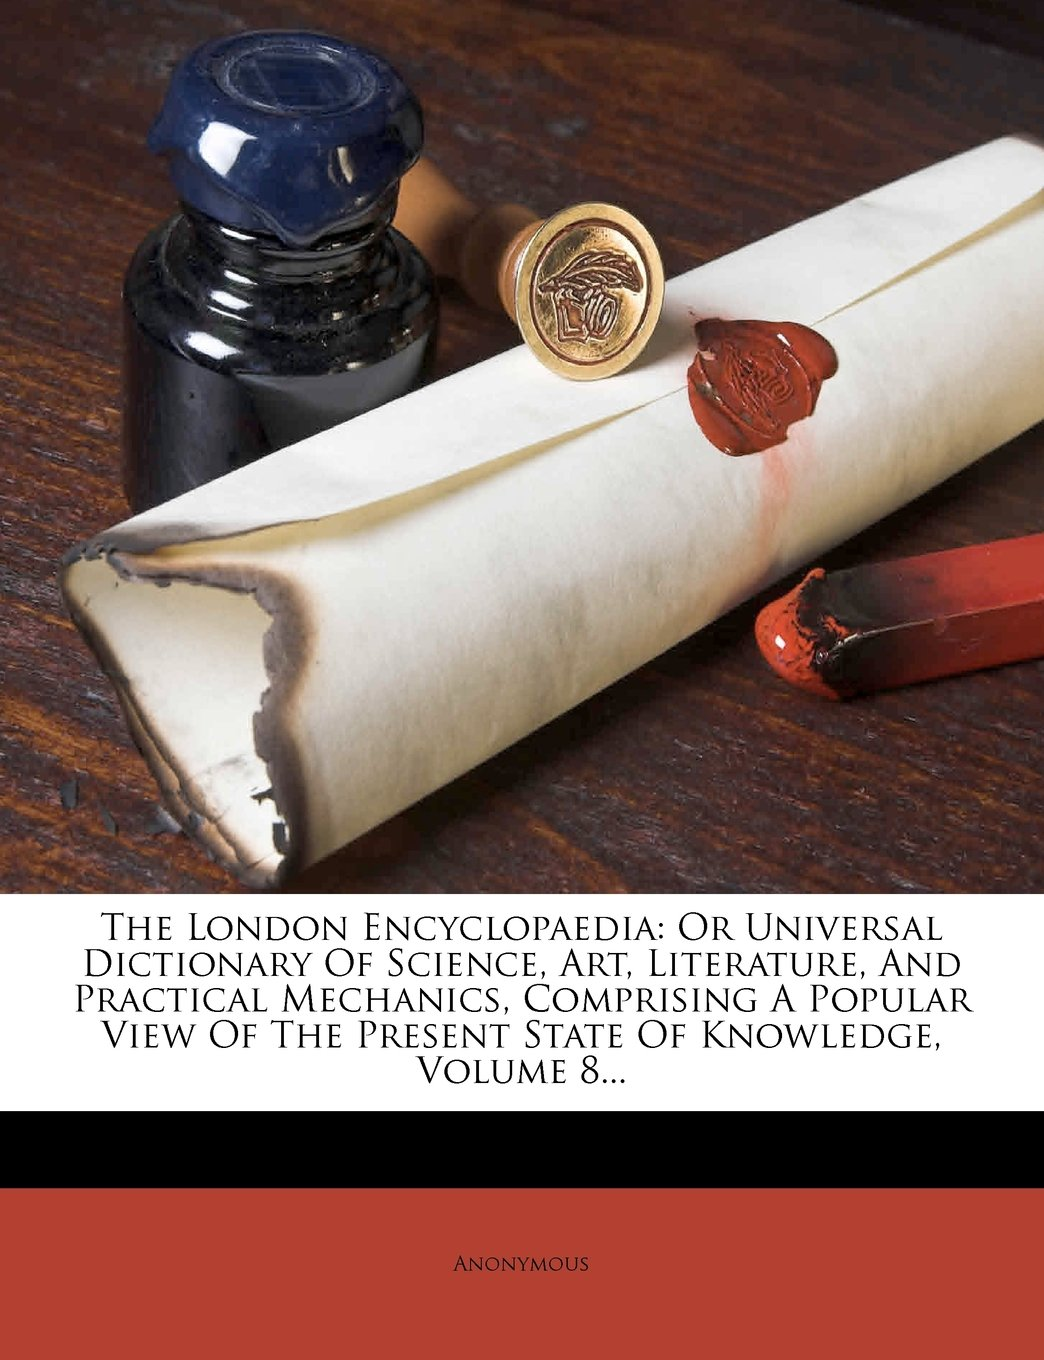 The London Encyclopaedia: Or Universal Dictionary Of Science, Art, Literature, And Practical Mechanics, Comprising A Popular View Of The Present State Of Knowledge, Volume 8... pdf epub